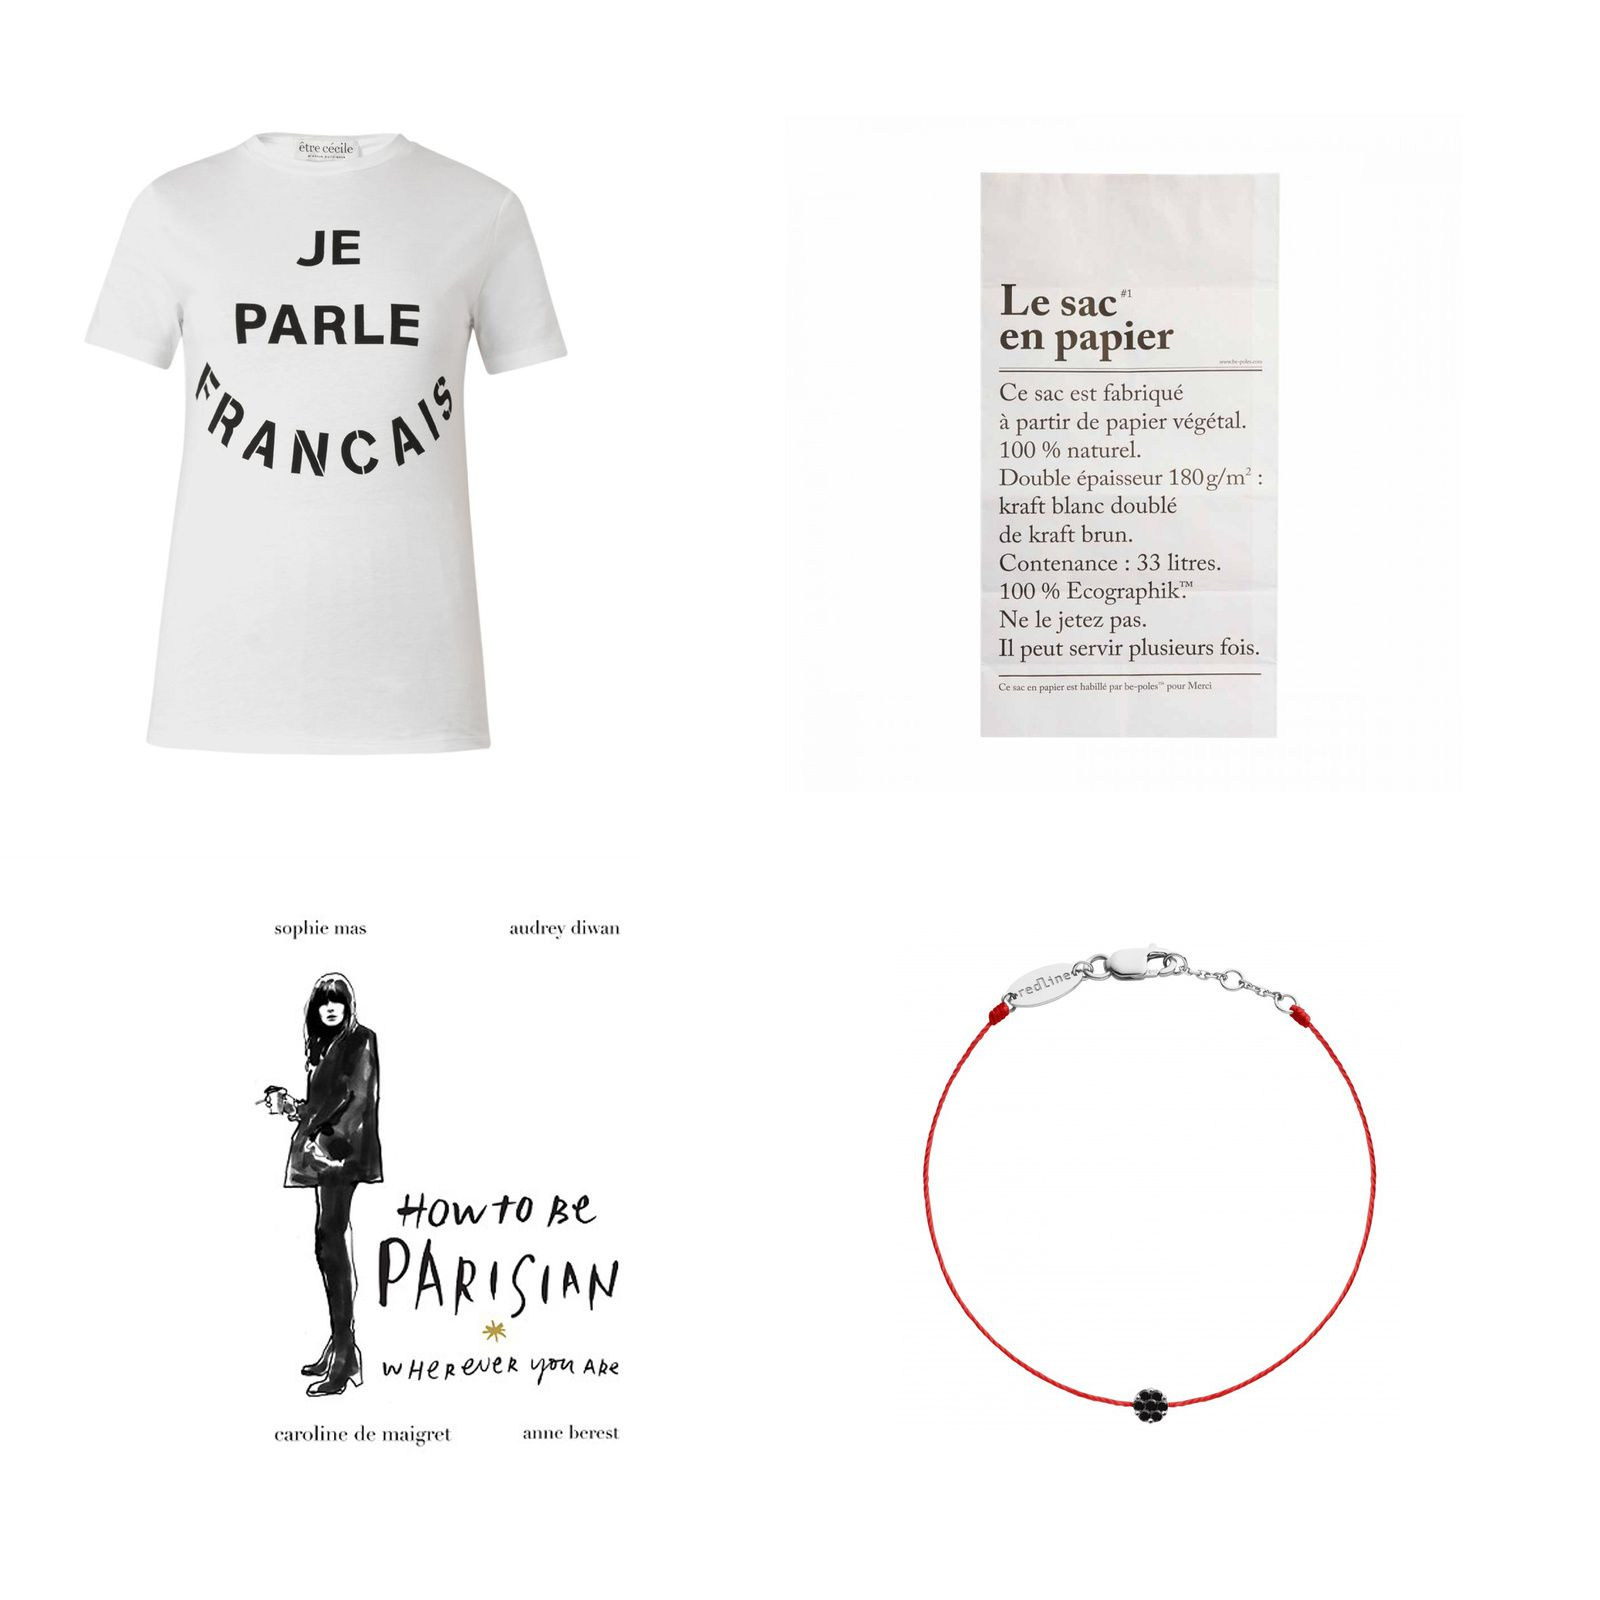 T-Shirt Etre Cecile, Sac en Papier chez Merci, Livre How to be Parisian (wherever you are), bracelet Illusion diamant noir REDLINE